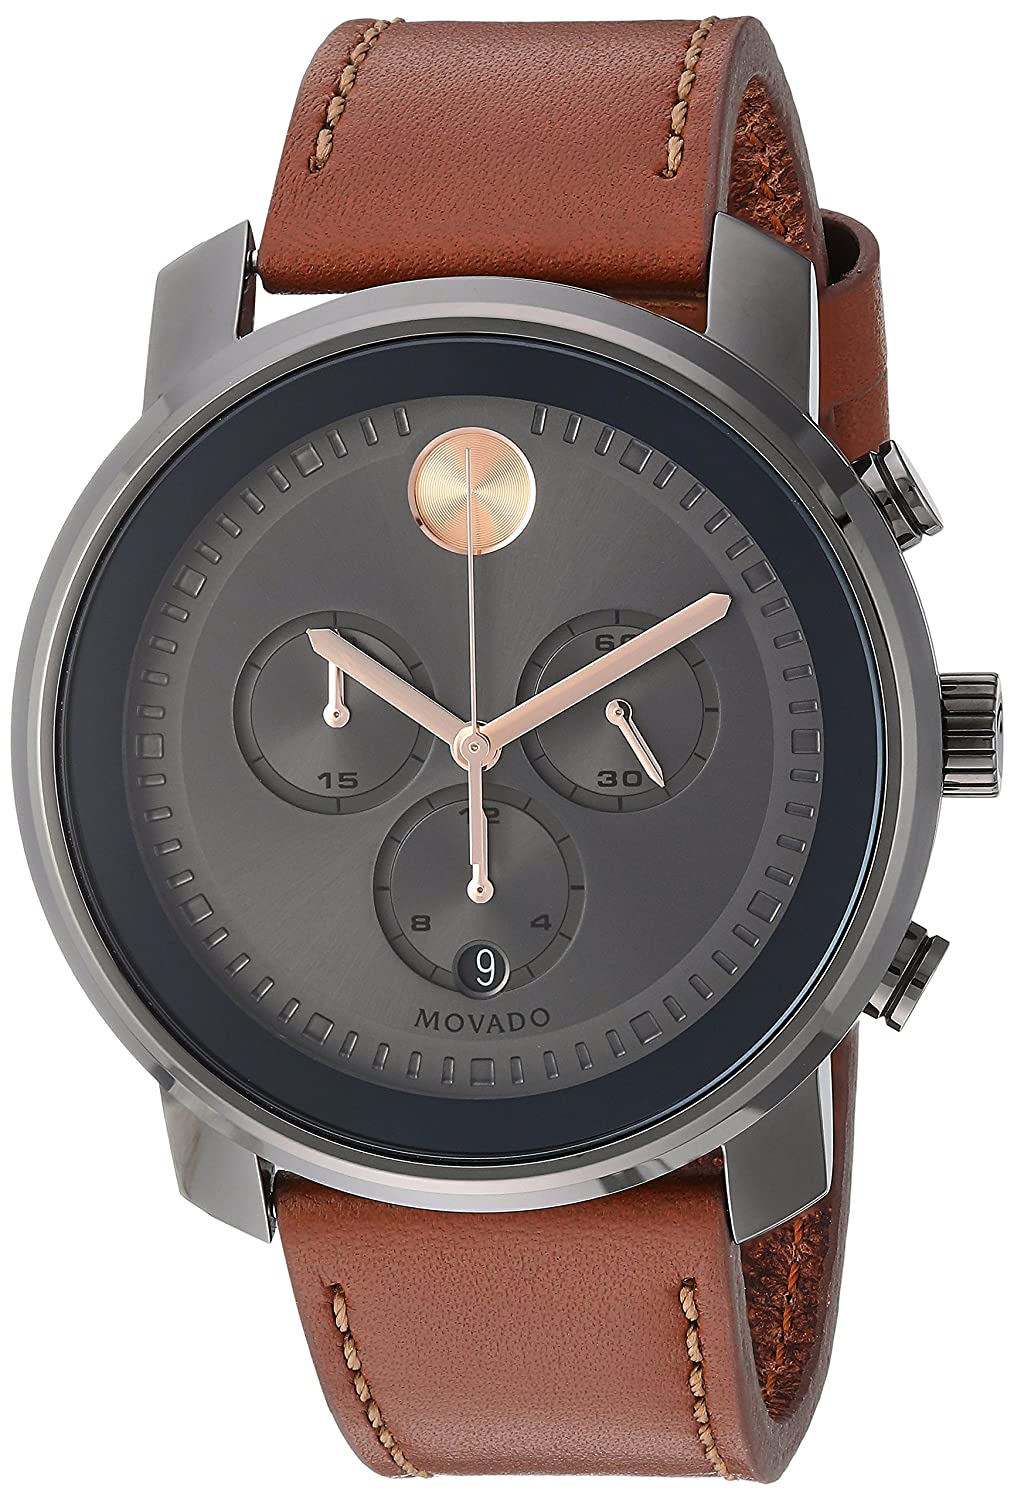 b9009861b Amazon.com: Movado Men's Stainless Steel Swiss-Quartz Watch with Leather  Strap, Brown, 22 (Model: 3600421): Watches